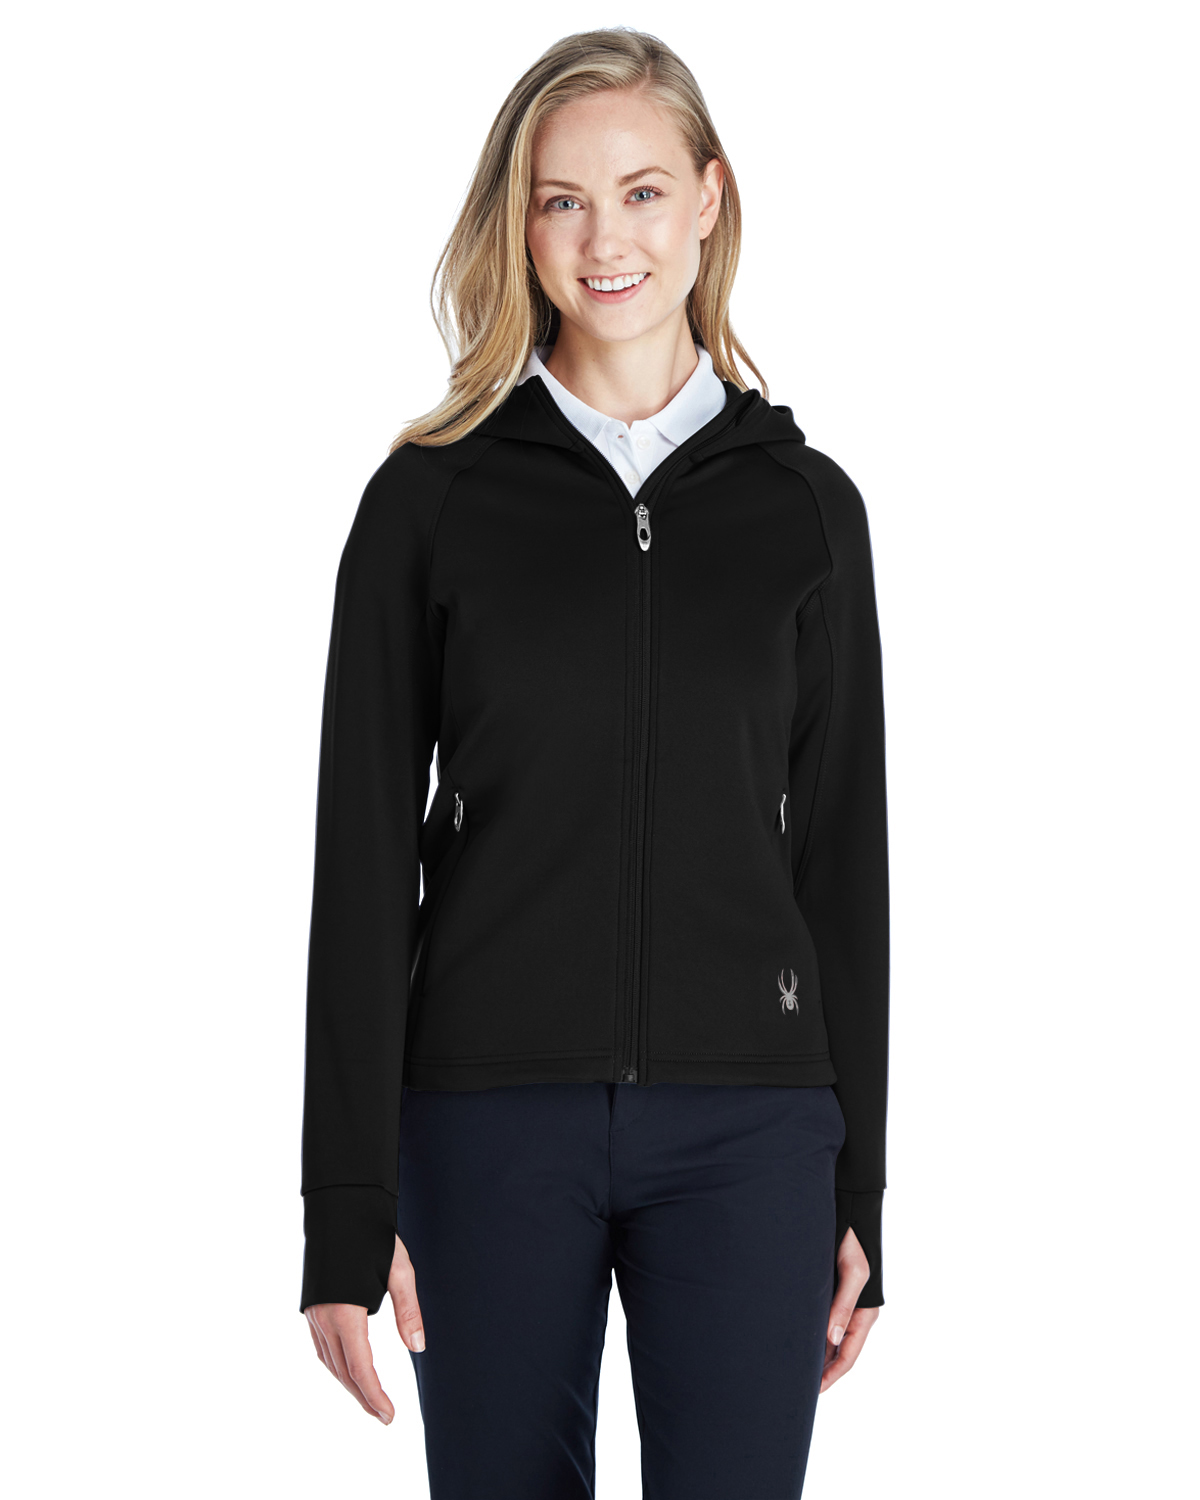 Spyder 187331 - Ladies' Hayer Full-Zip Z Hooded Fleece Jacket